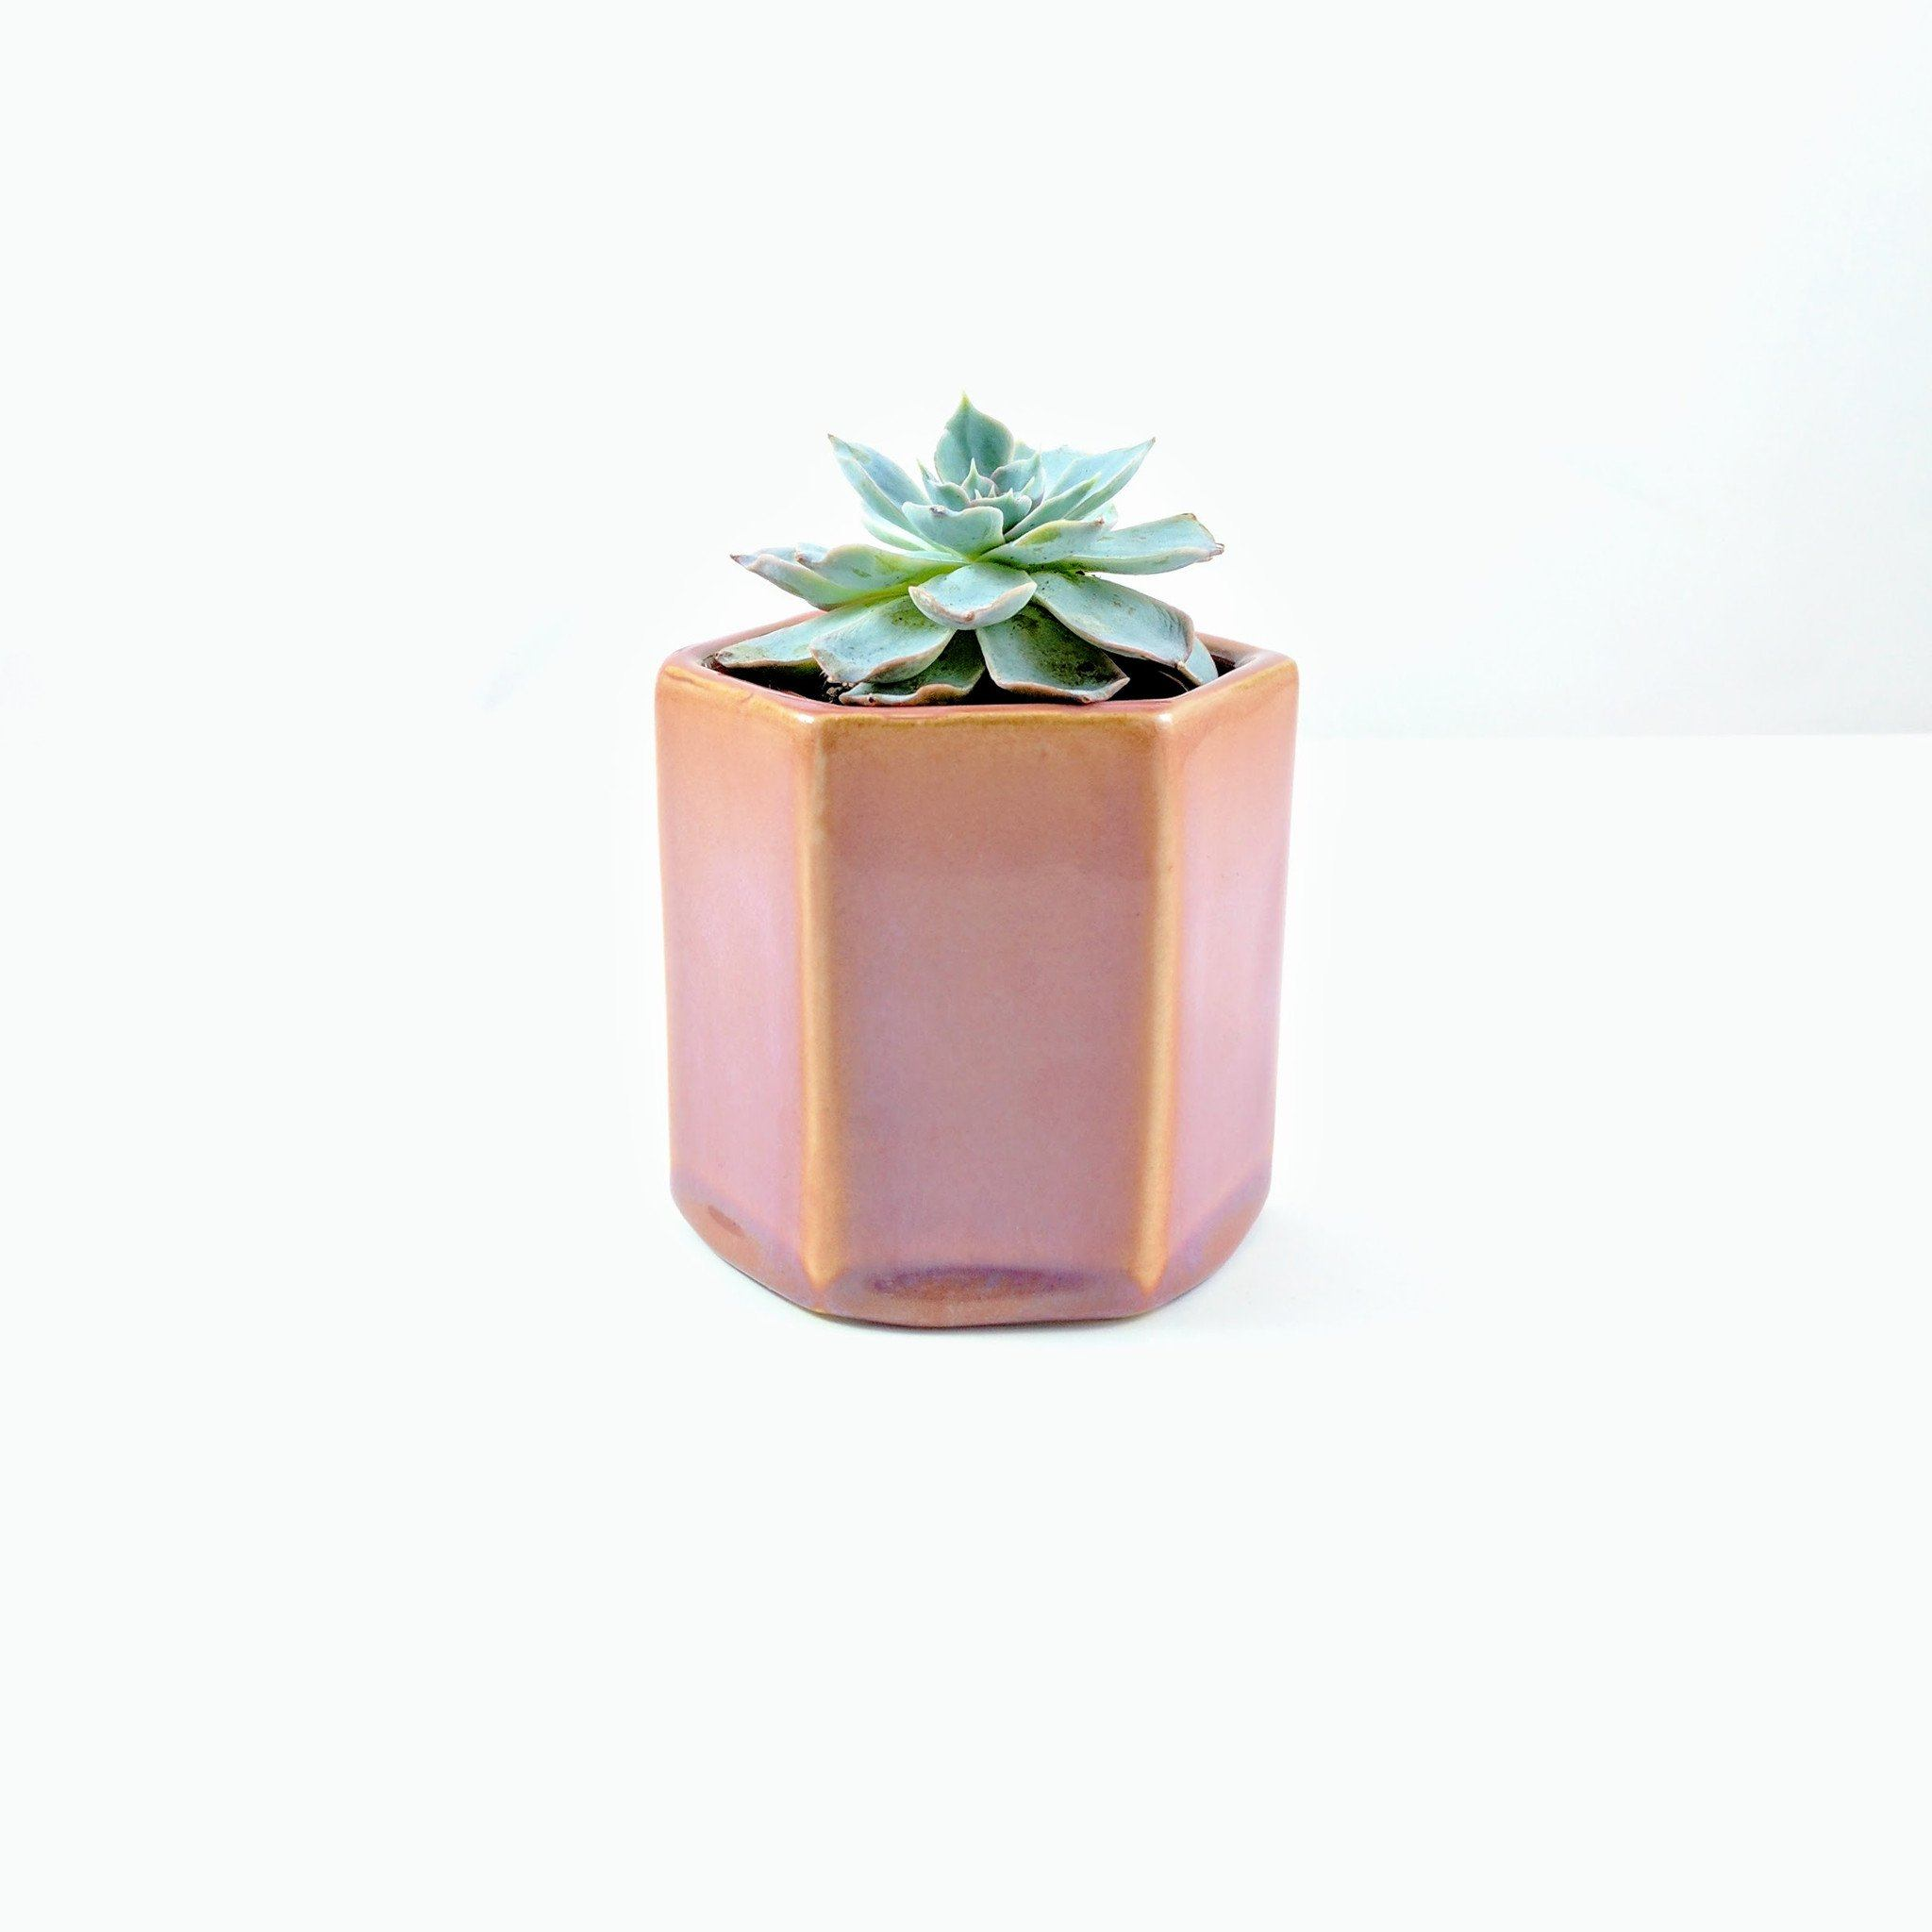 Tula Pot - Dusty Rose - By Succuterra | Succulents, Air Plants & Terrariums